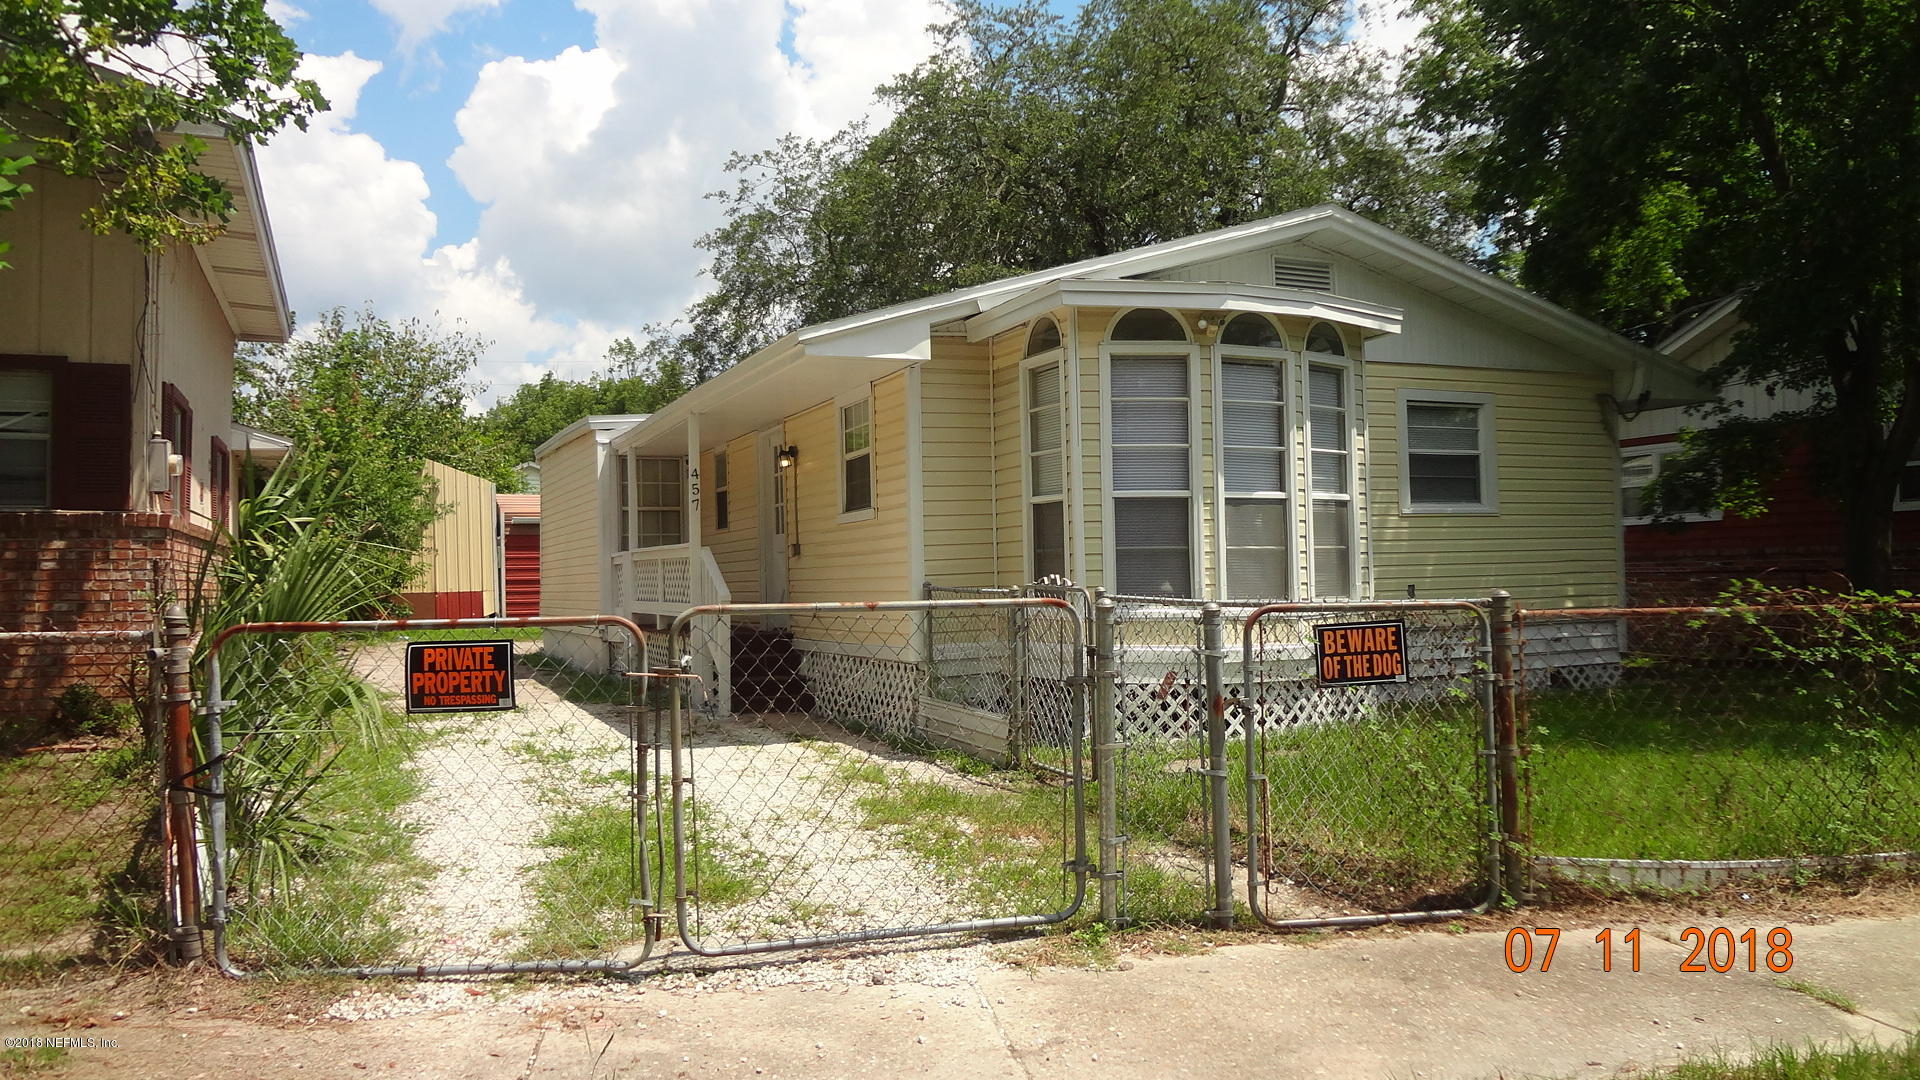 457 45TH, JACKSONVILLE, FLORIDA 32208, 2 Bedrooms Bedrooms, ,1 BathroomBathrooms,Residential - single family,For sale,45TH,970080